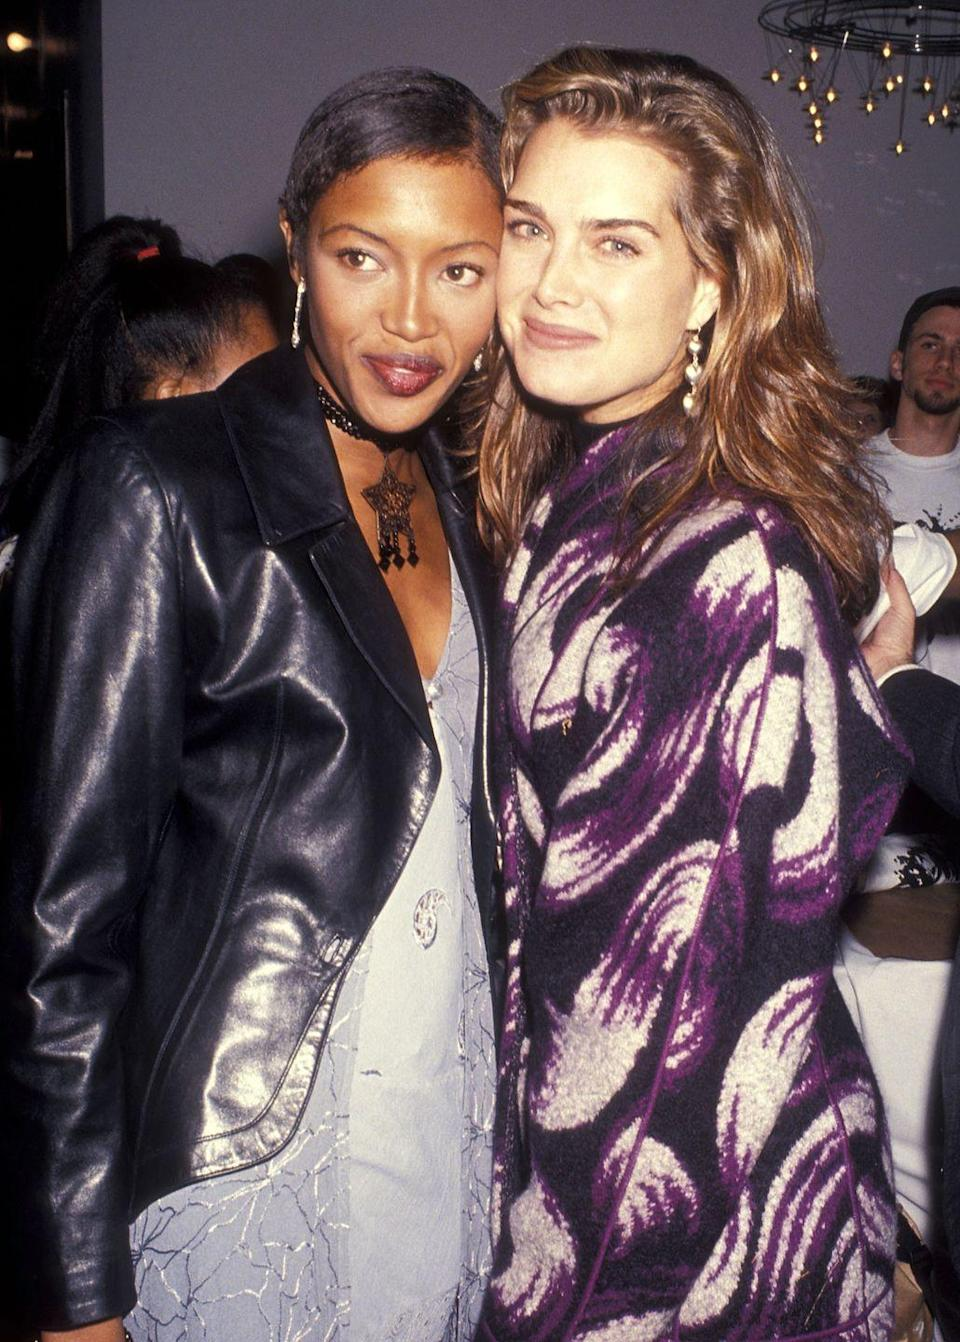 <p>Brooke is pictured here with Naomi Campbell, back when both of their careers were extremely successful. In 1993, Brooke had appearances in TV shows including <em>I Can Make You Love Me, The Simpsons</em>, and <em>Tales from the Crypt</em>. </p>